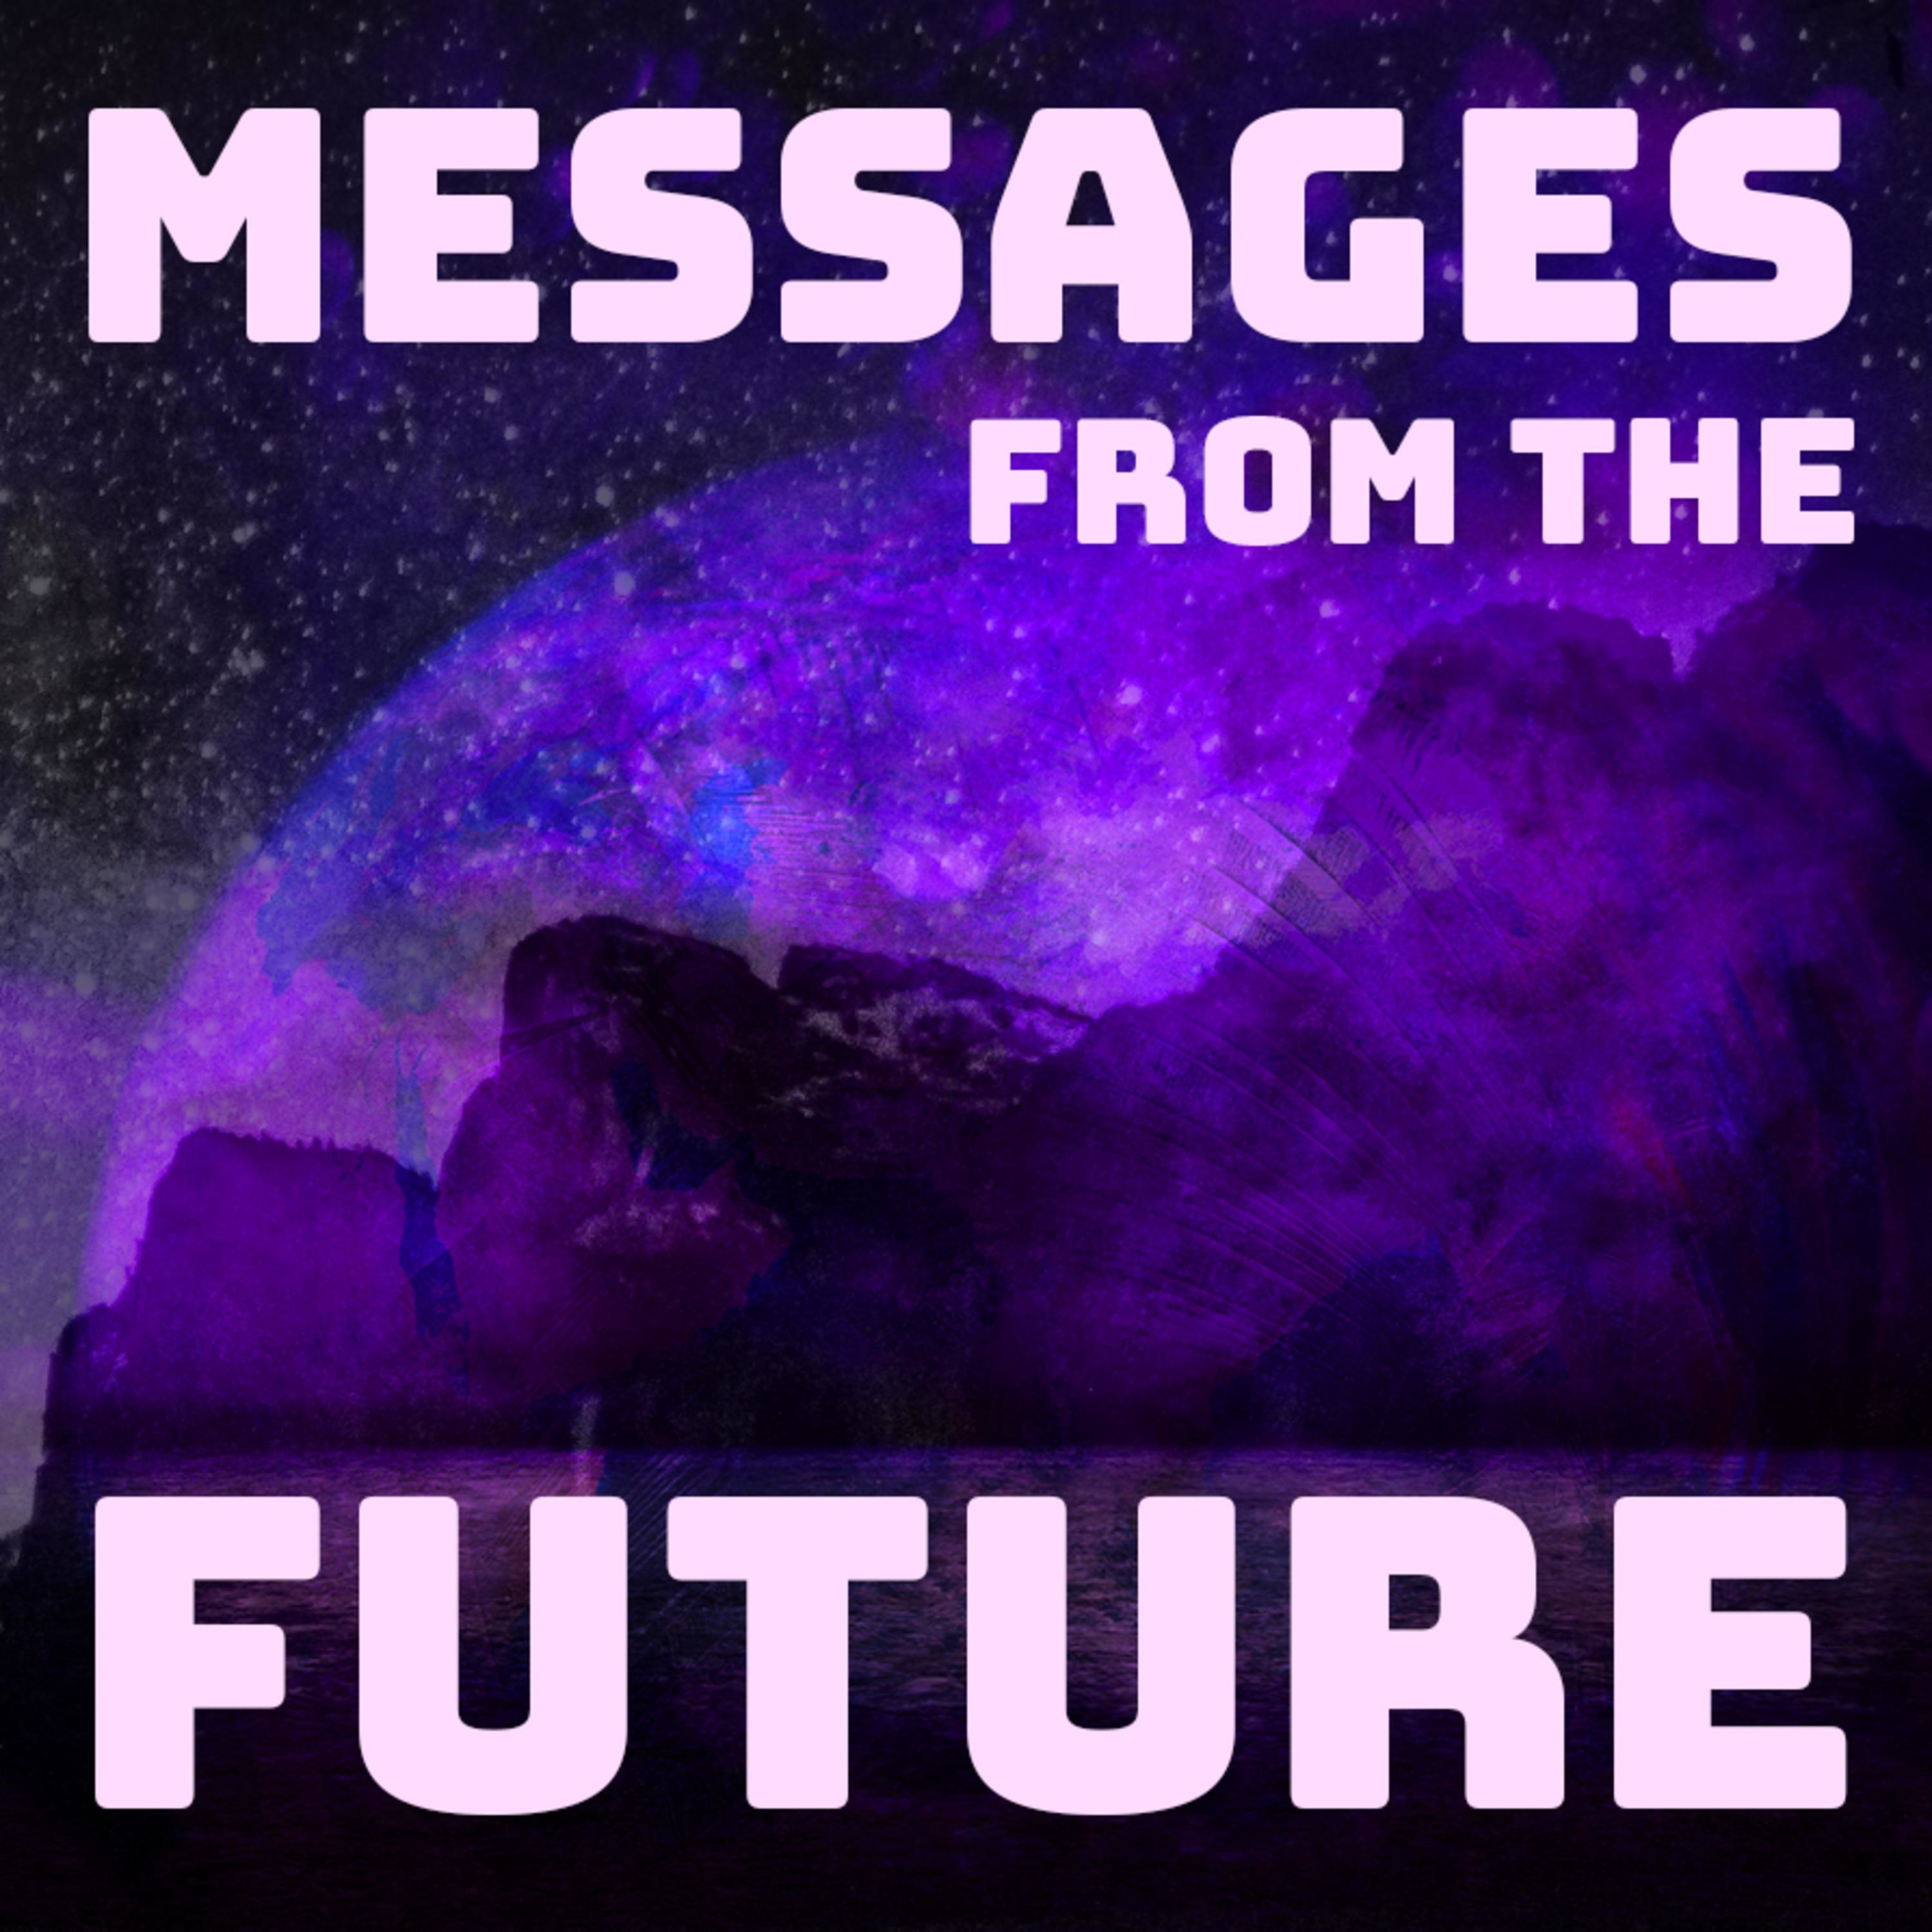 Messages From The Future